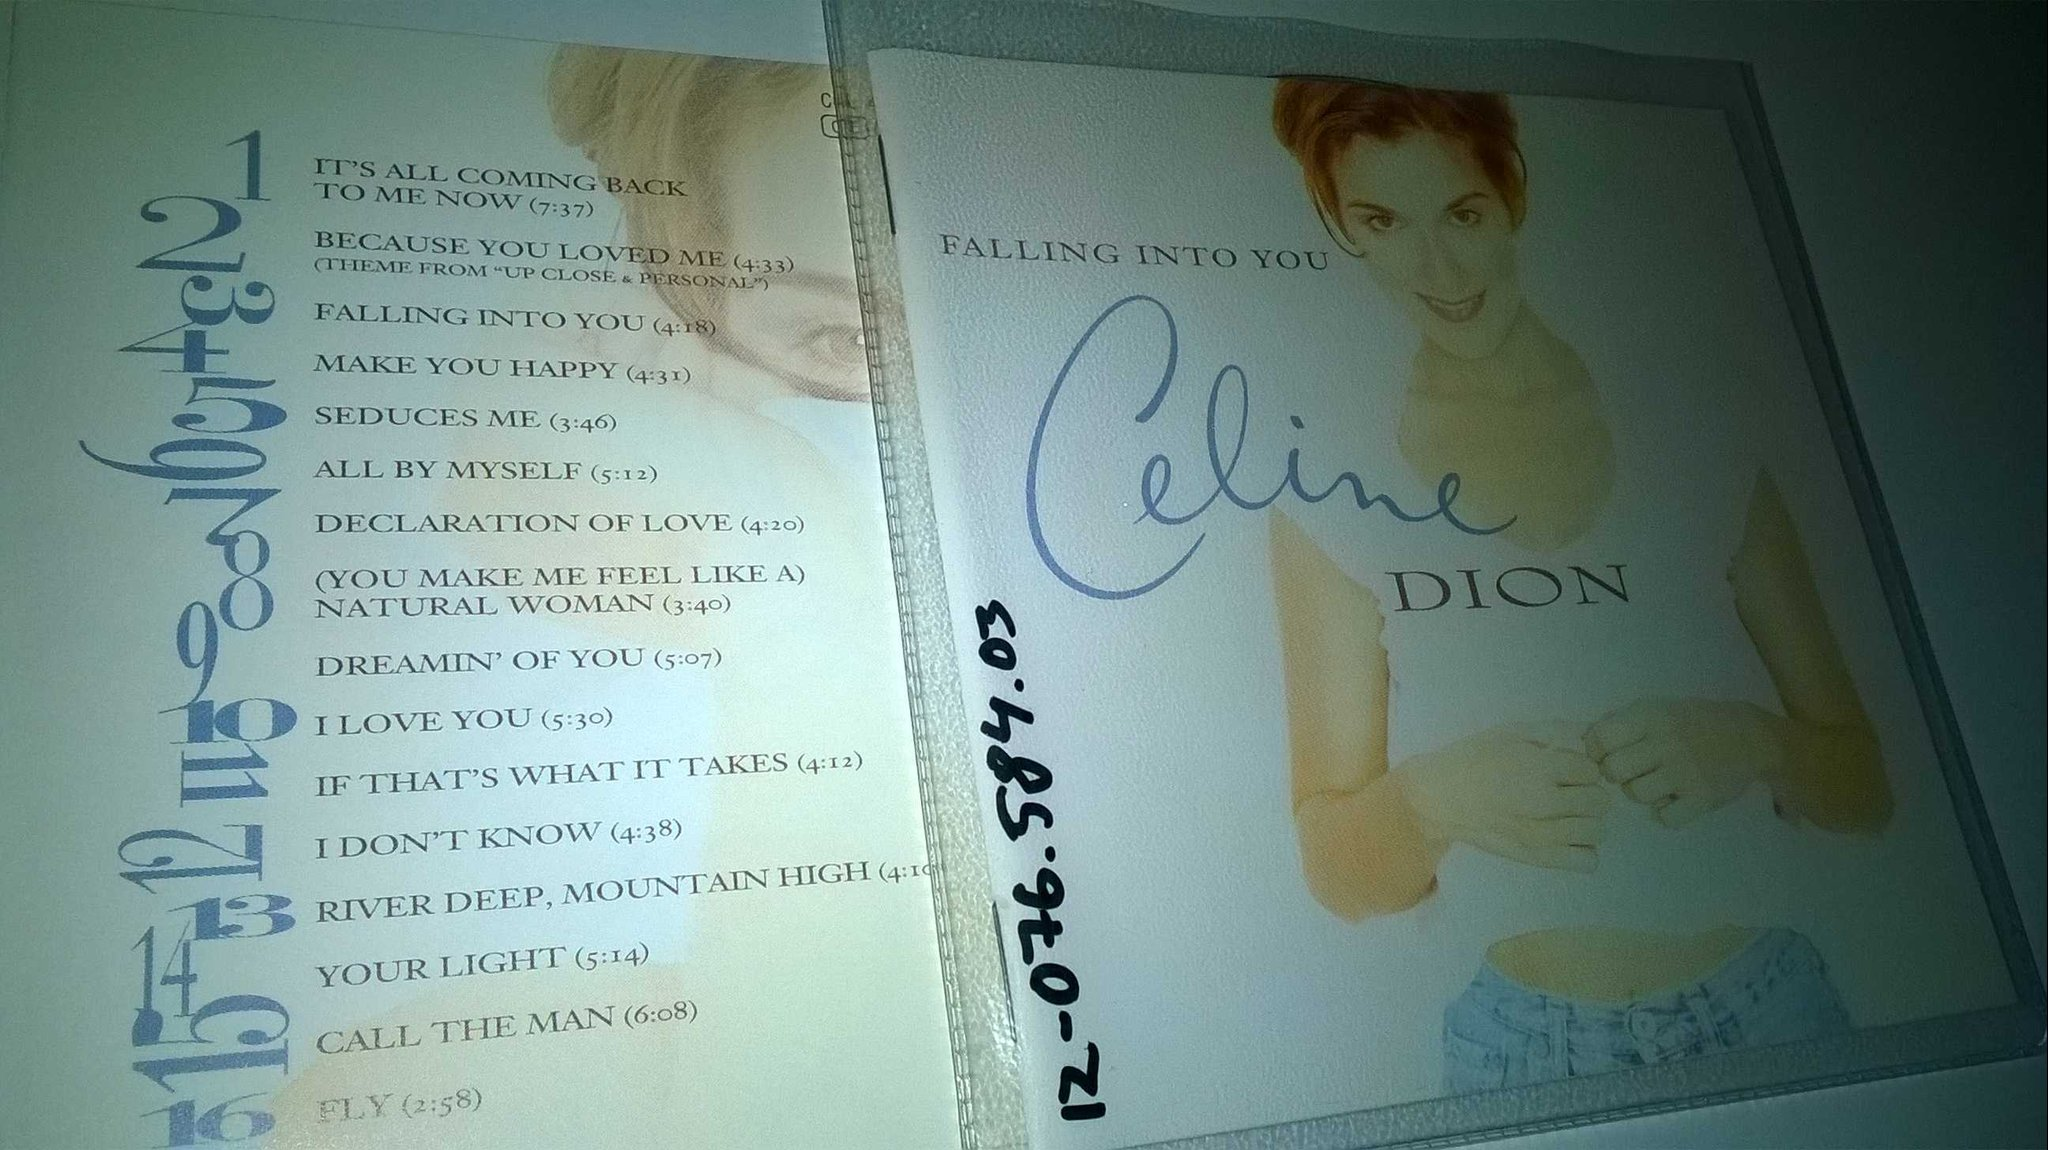 Celine Dion - Falling Into You, CD